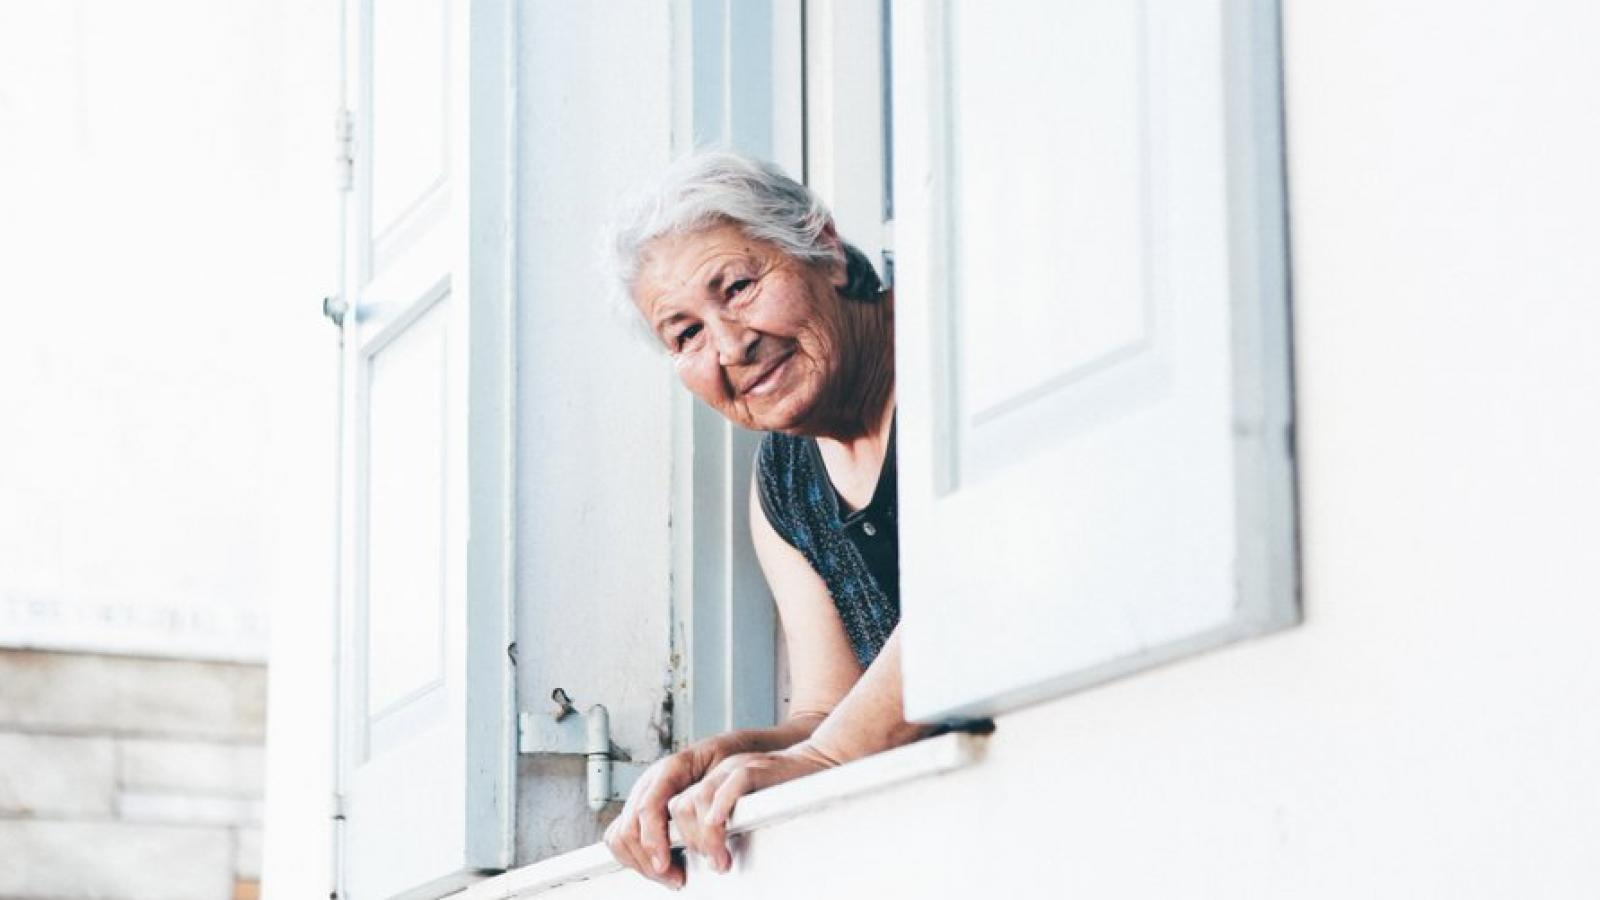 An old lady leans out of a house window and is looking at the camera